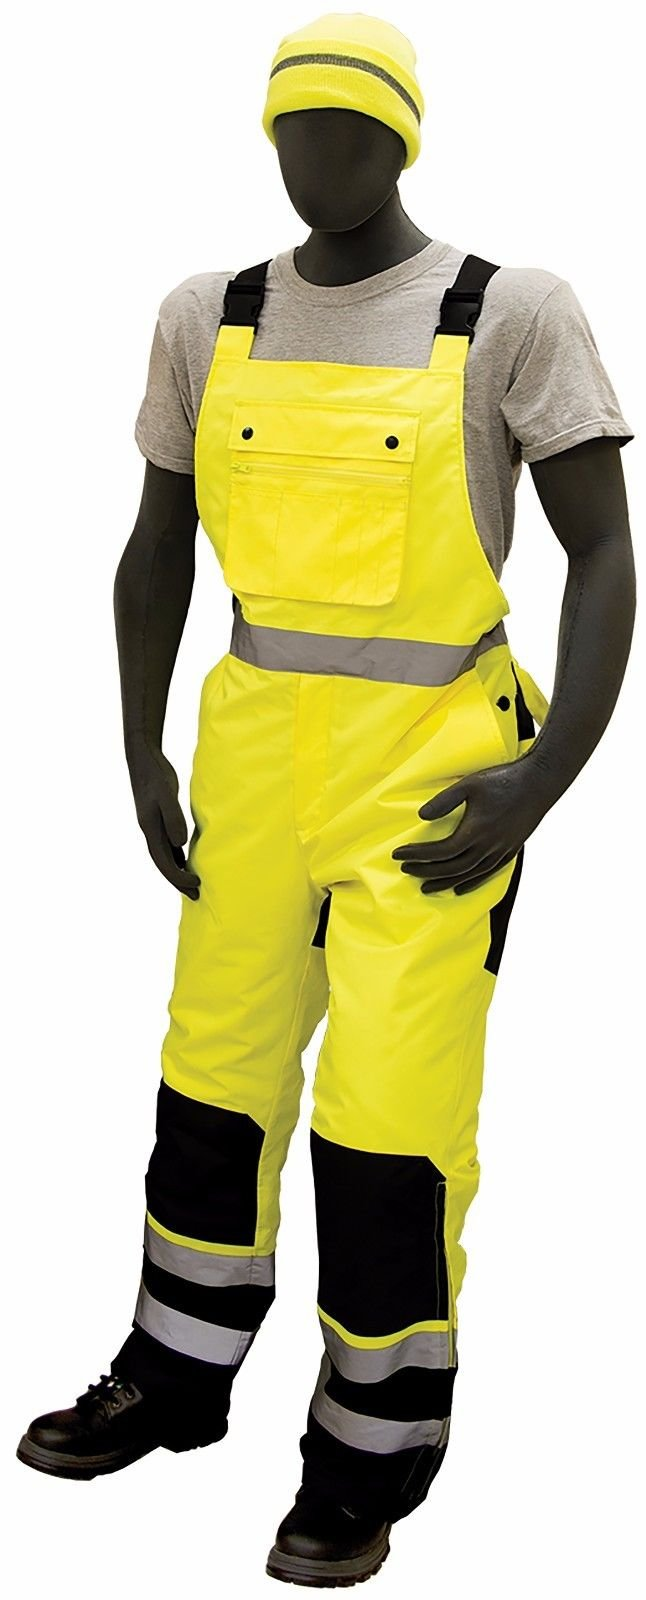 Majestic 75-2357 ANSI Class E Hi-Viz Bib Overalls, Waterproof, Quilted Insulation, Reinforced Nylon Rip-Stop, Zippers at Ankle, 3M Scotchlite, Yellow/Black, Size: XL